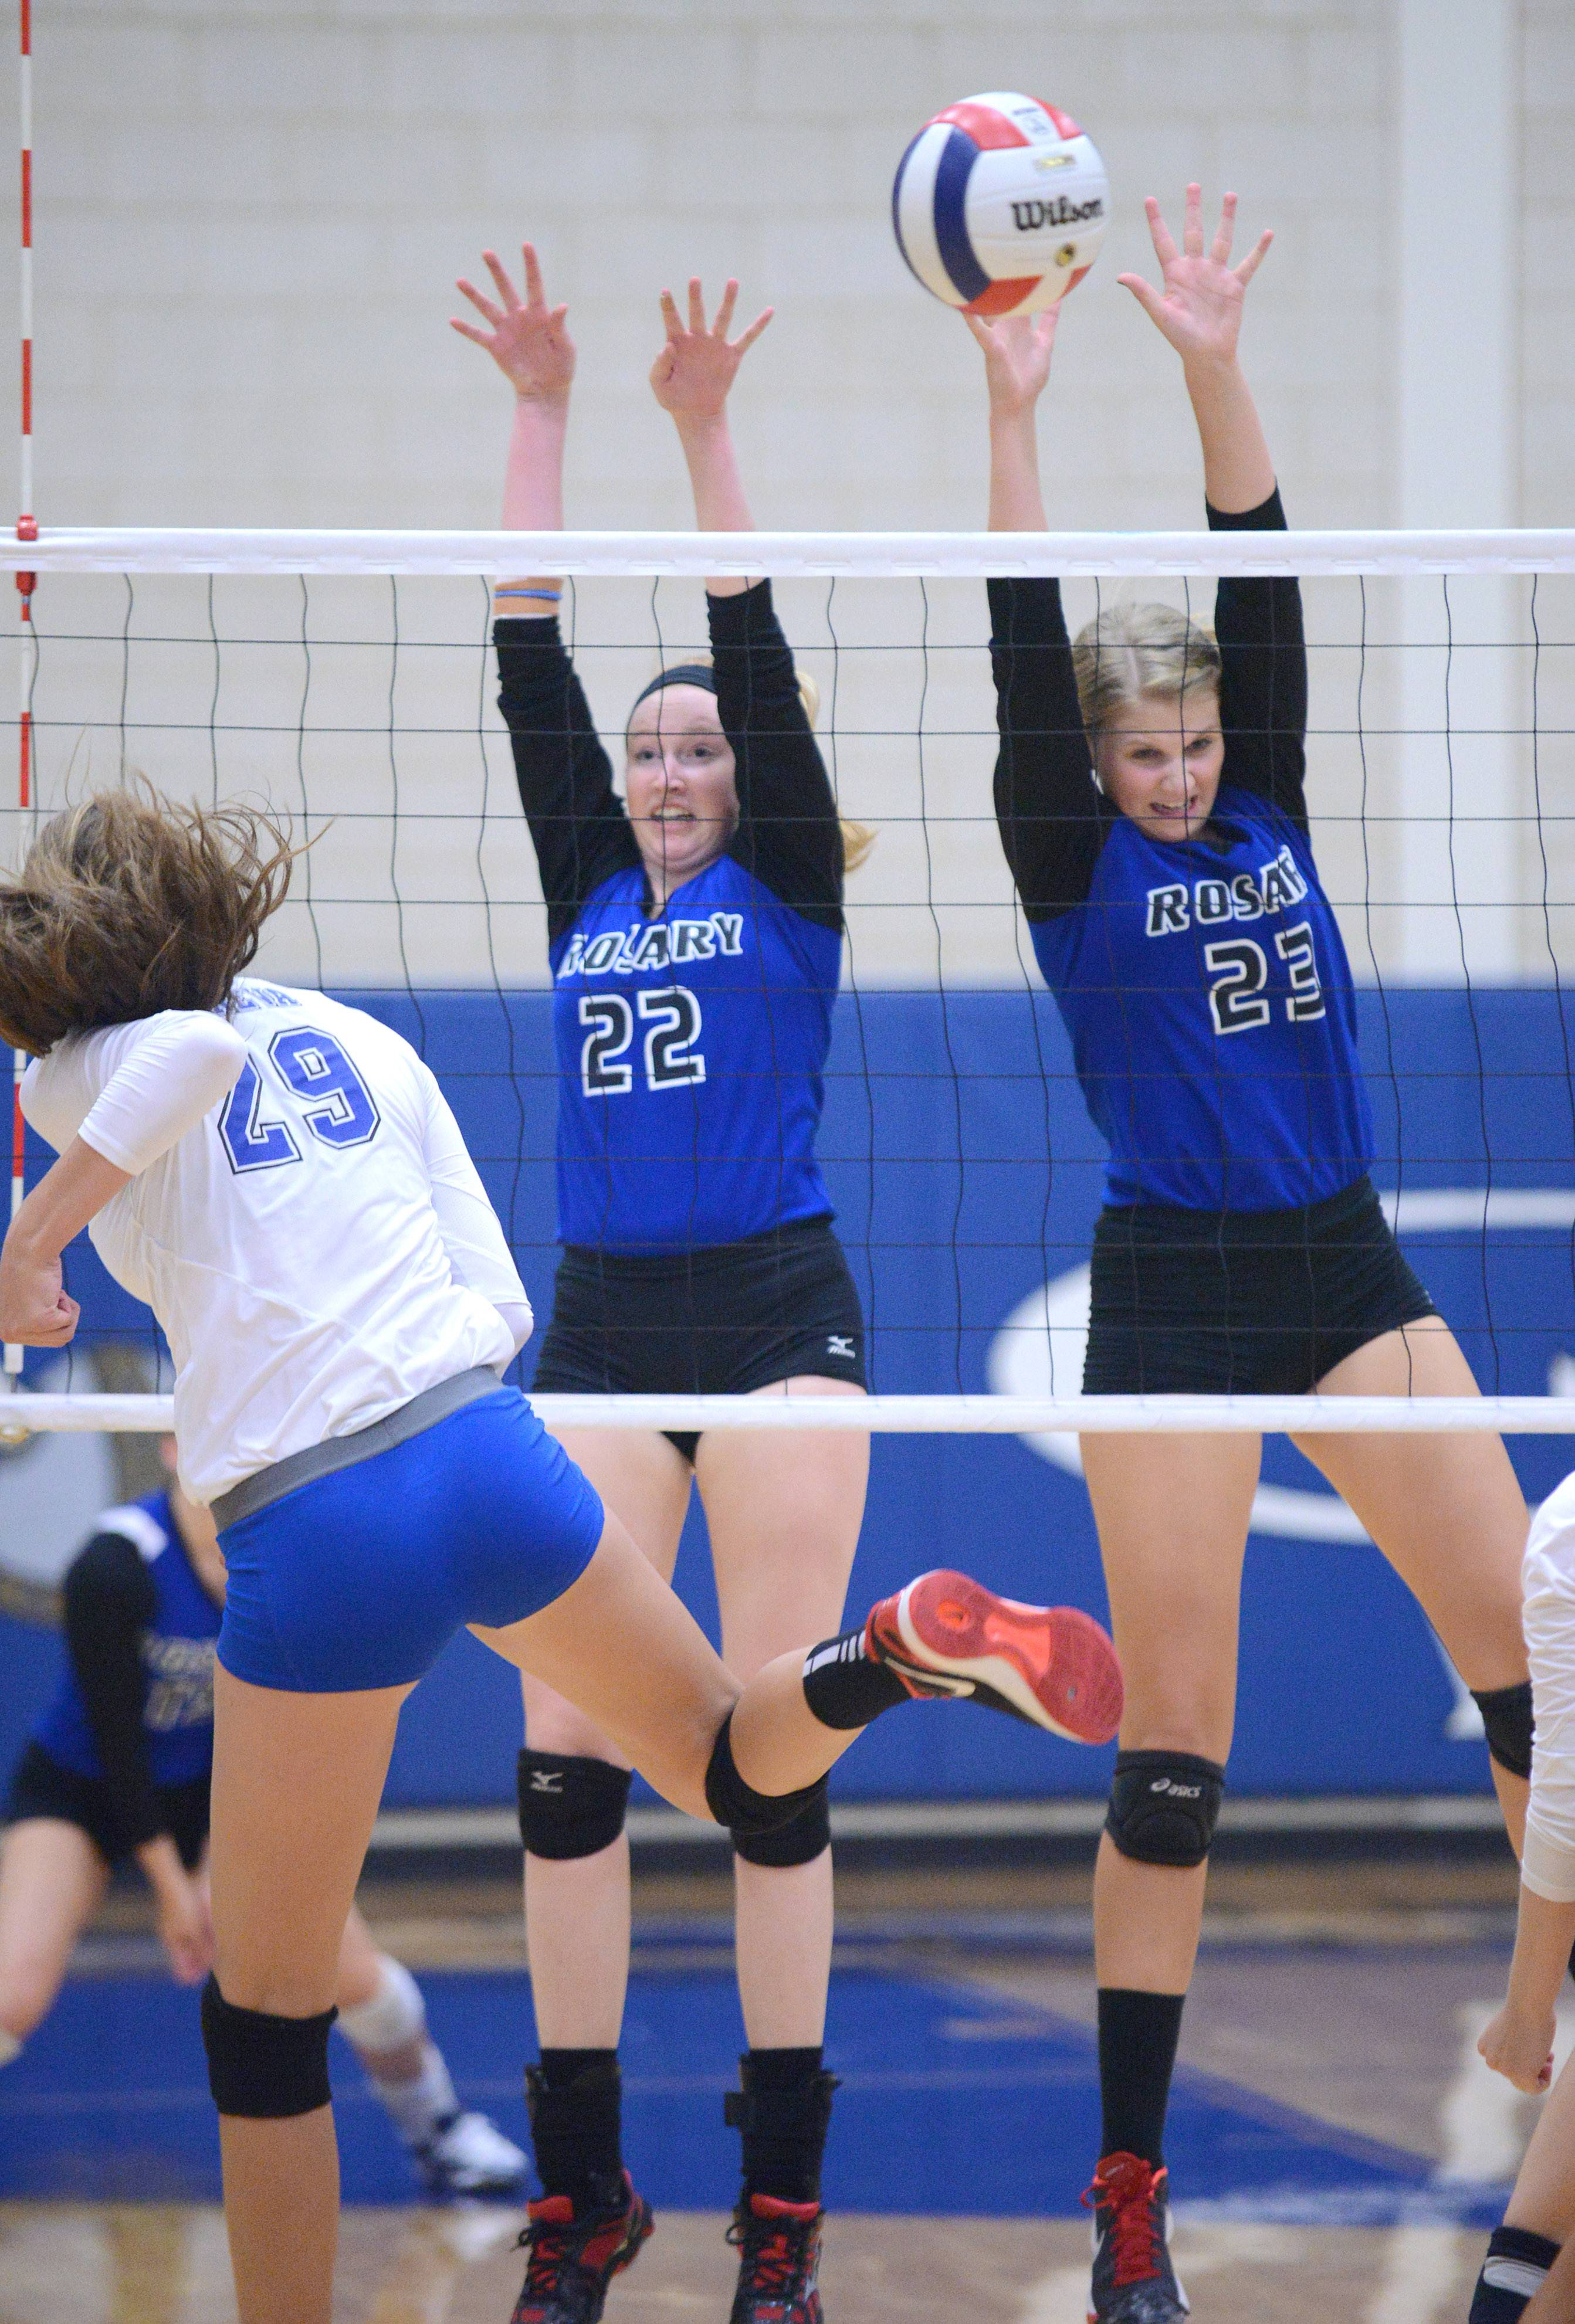 Geneva's Grace Loberg spikes over the net to Rosary's Joanna Wedge (22) and Michaela Ping (23) in the first match on Tuesday.